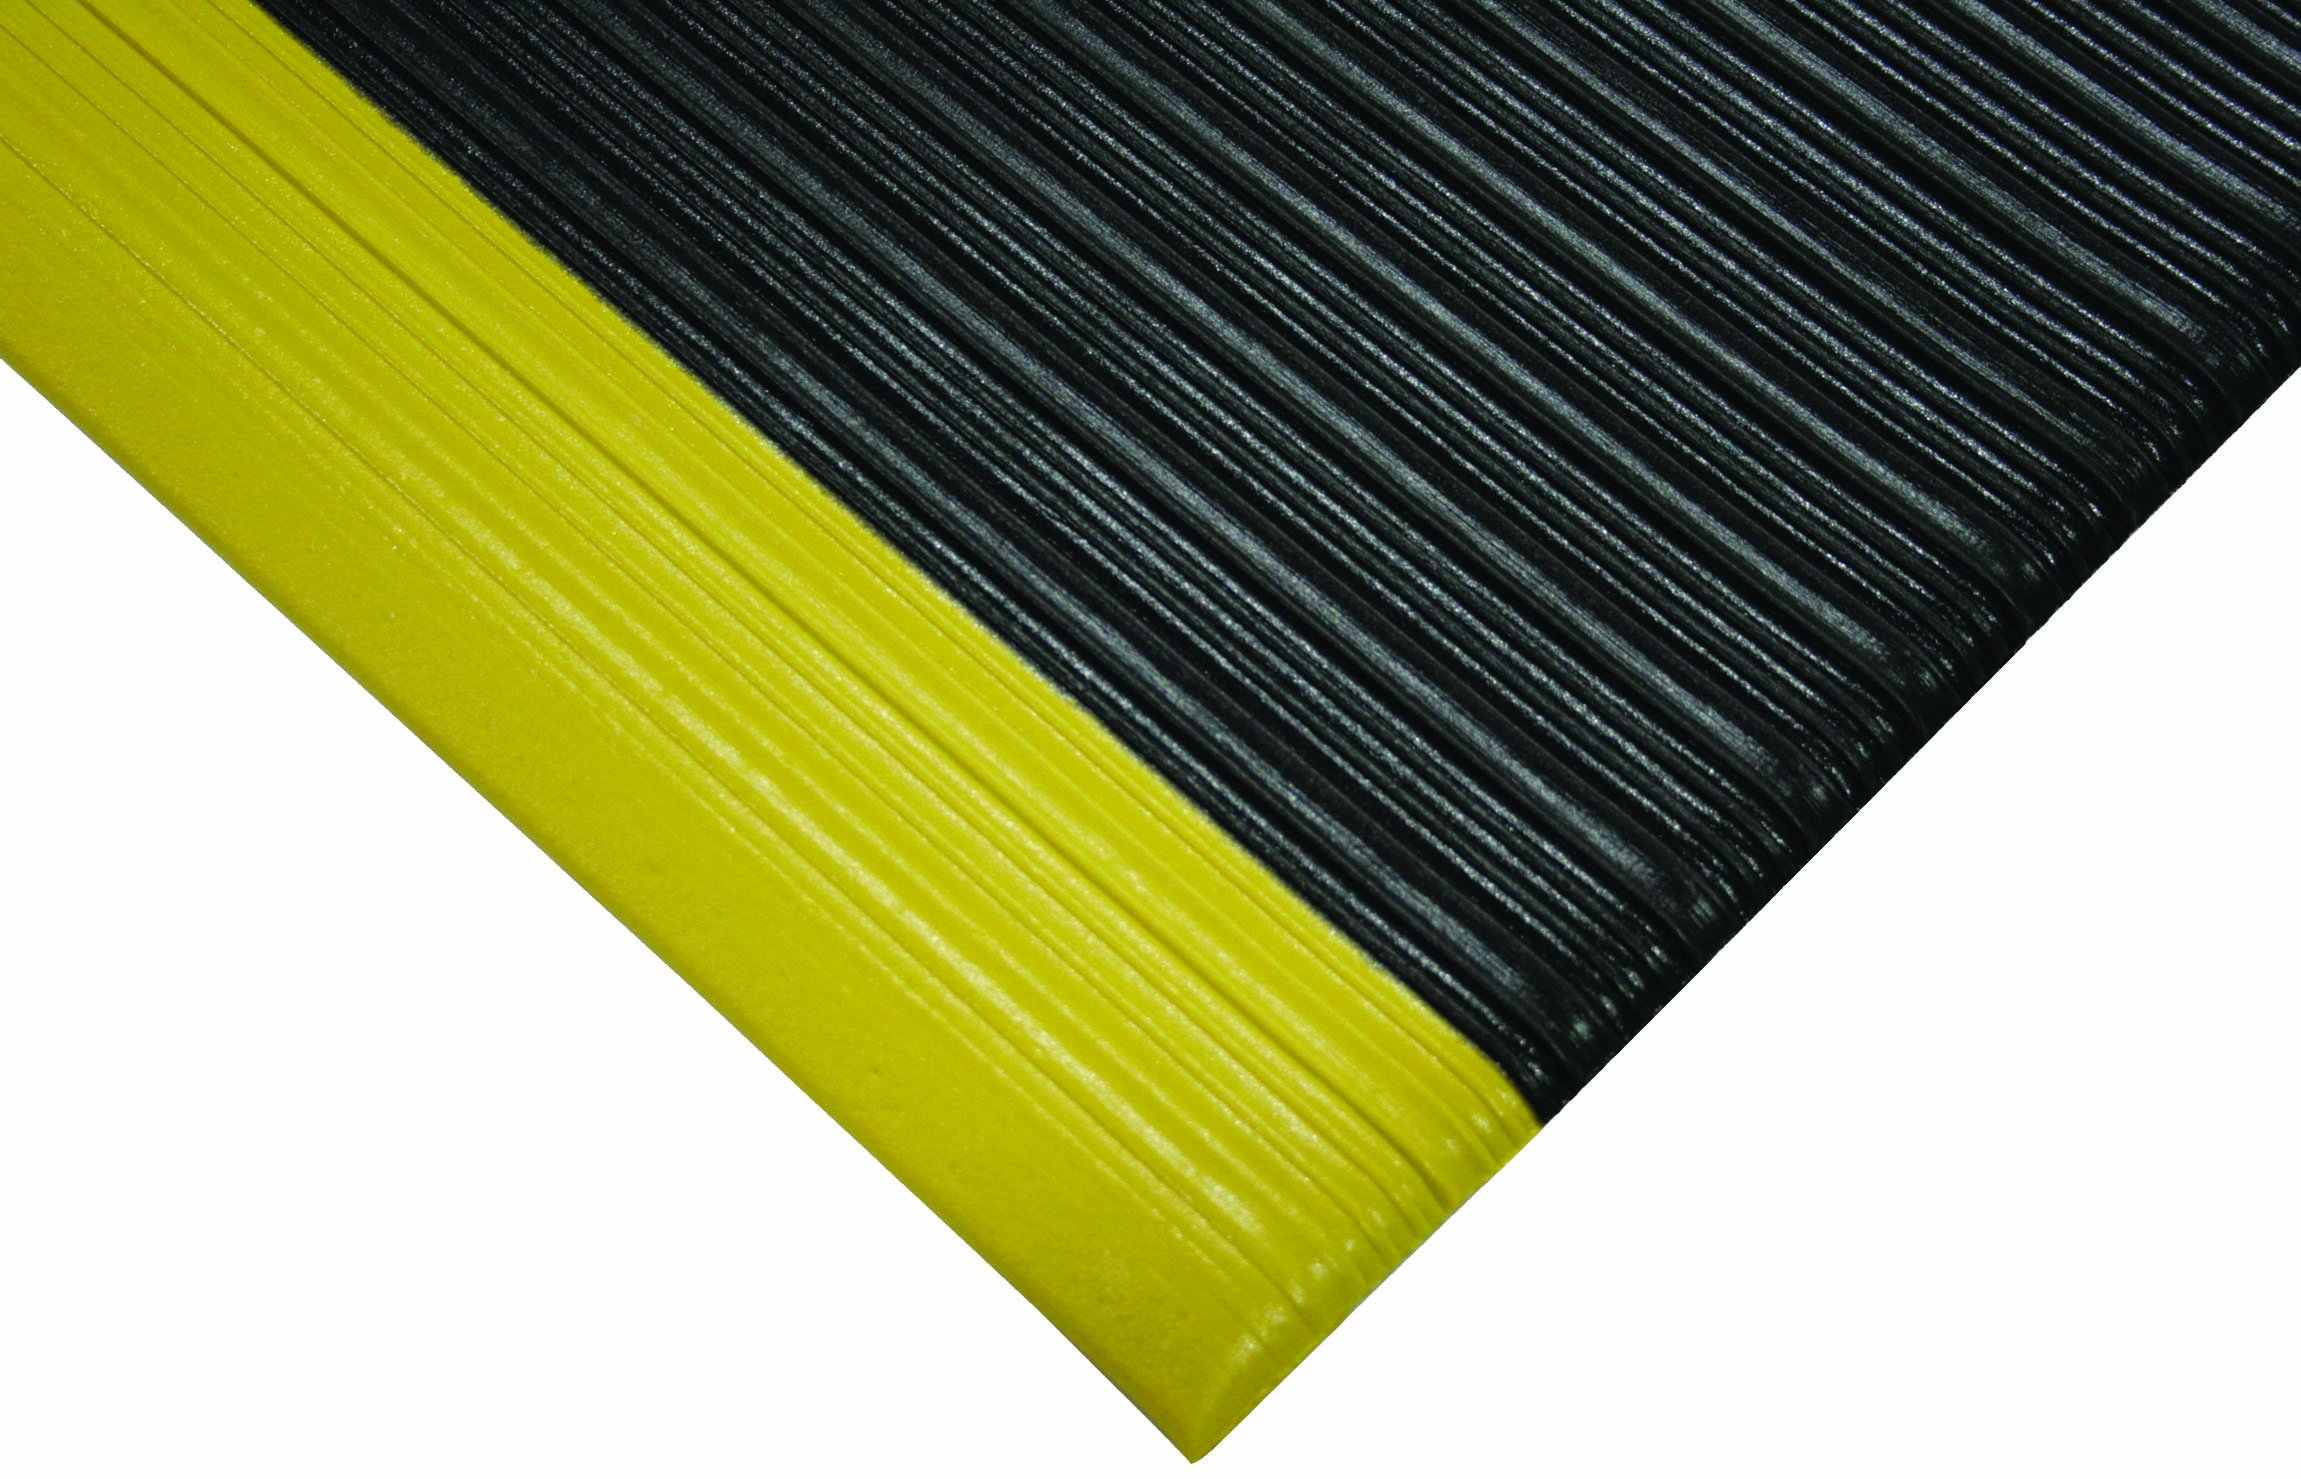 Wearwell PVC 451 Tuf Sponge Light Duty Anti-Fatigue Mat, for Dry Areas, 27'' Width x 60'' Length x 3/8'' Thickness, Black/Yellow